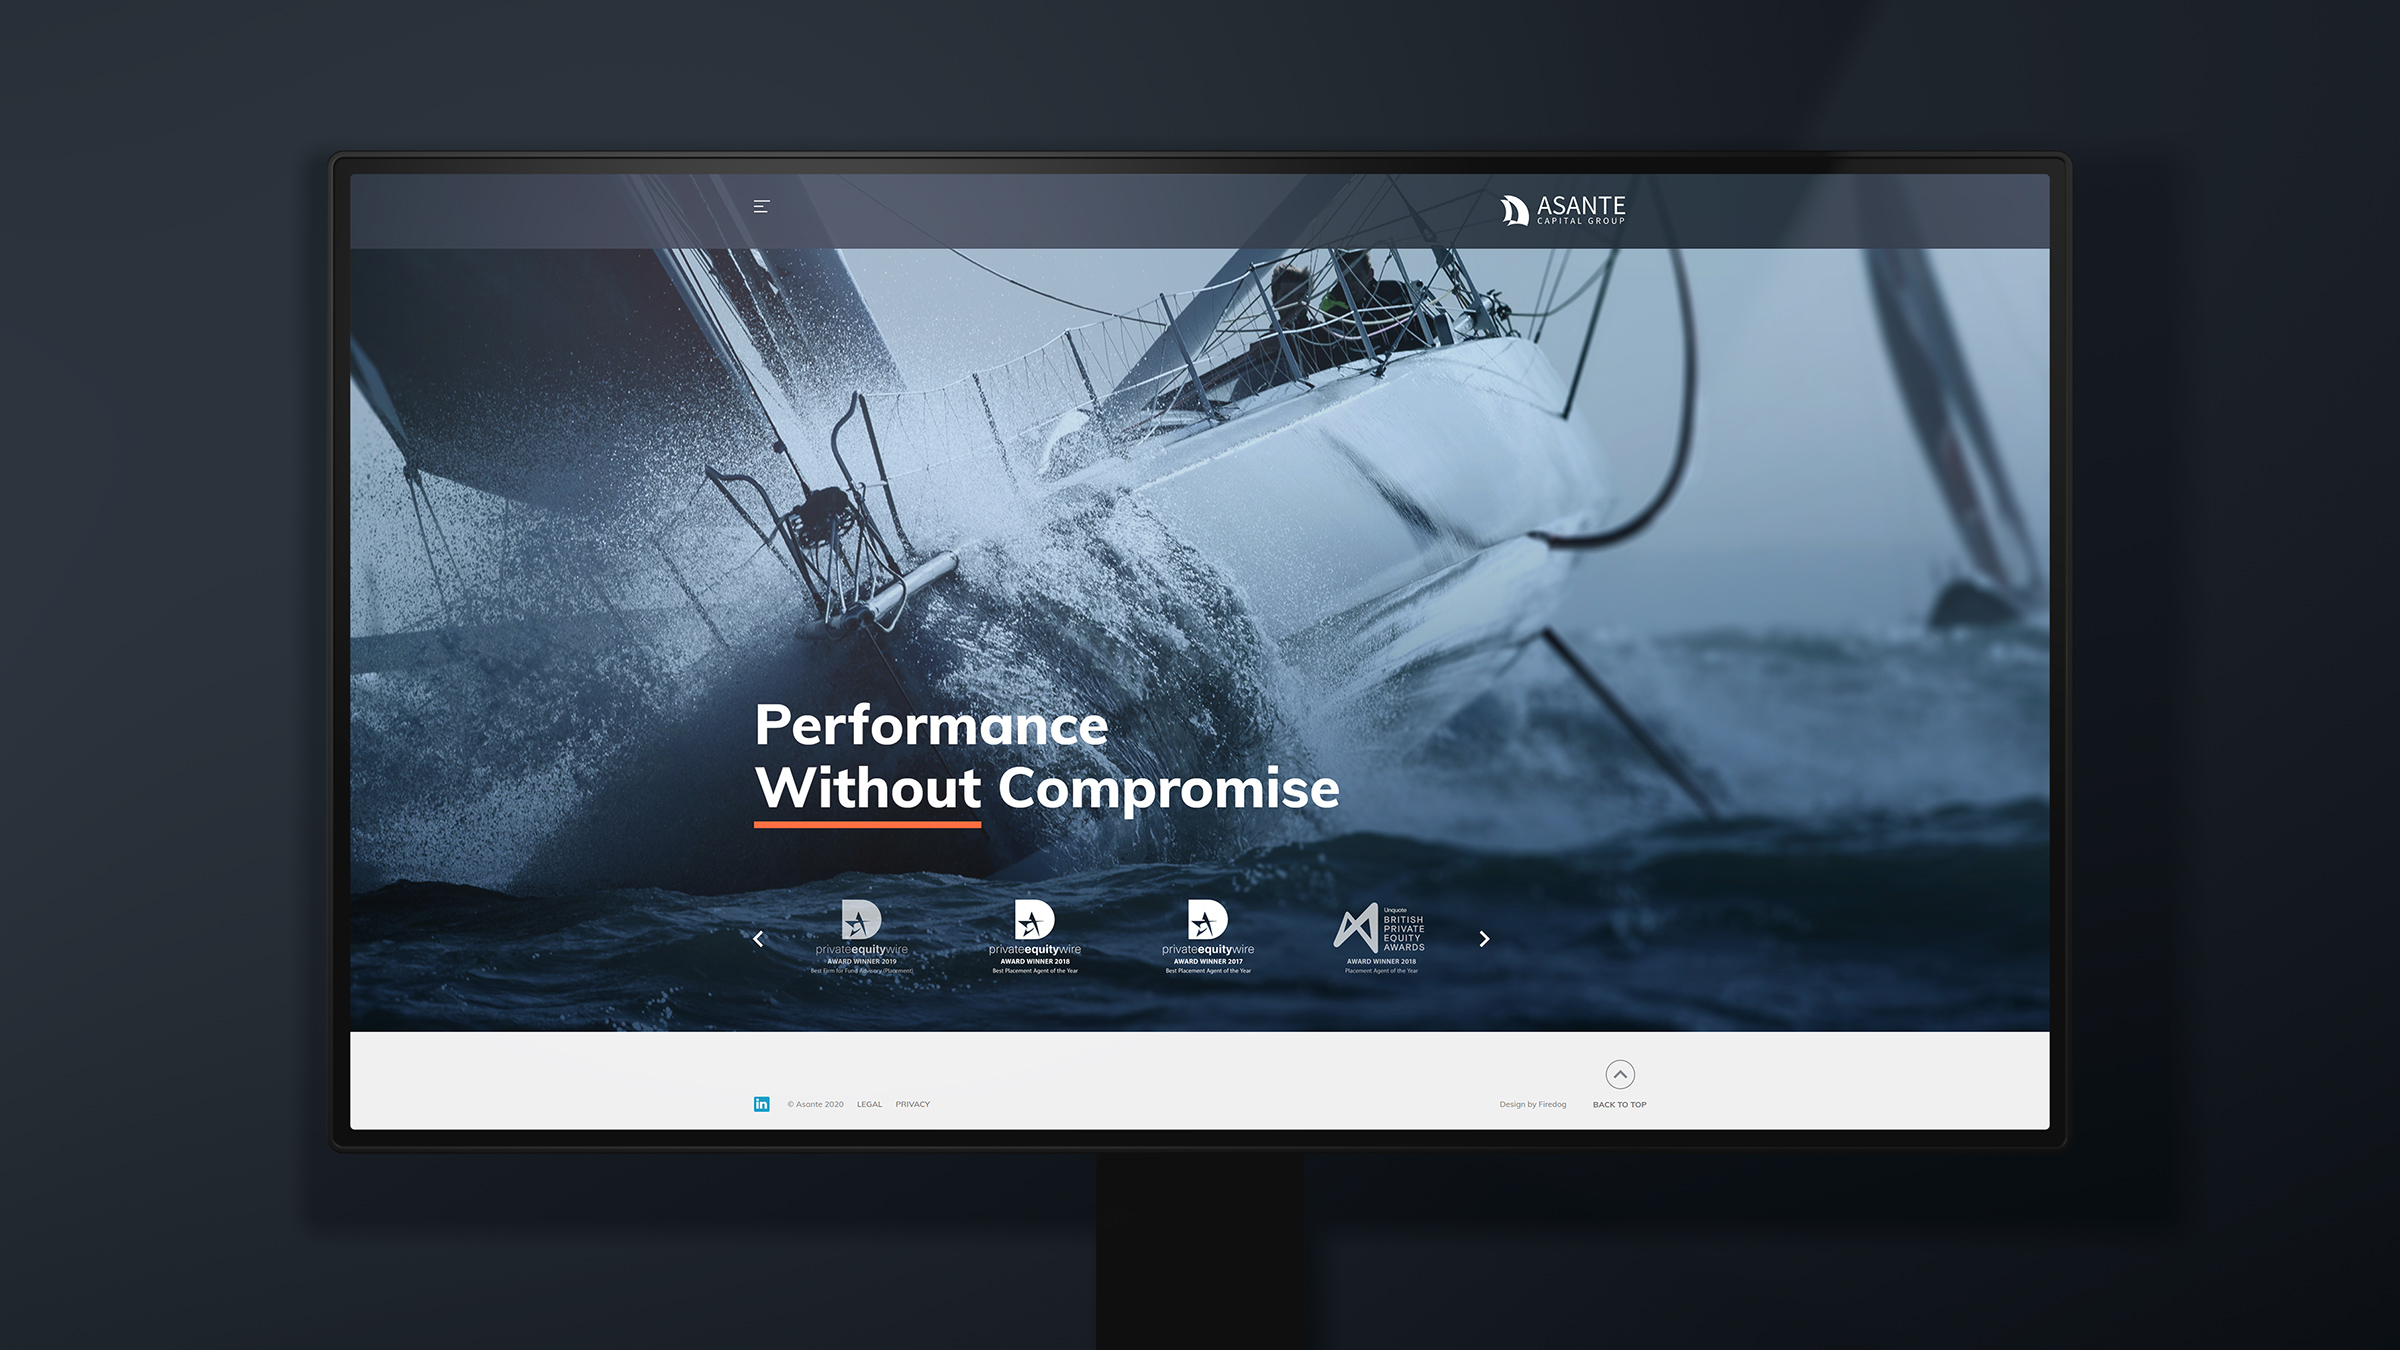 We aligned performance sailing with the service ethic of the business - a product without compromise.